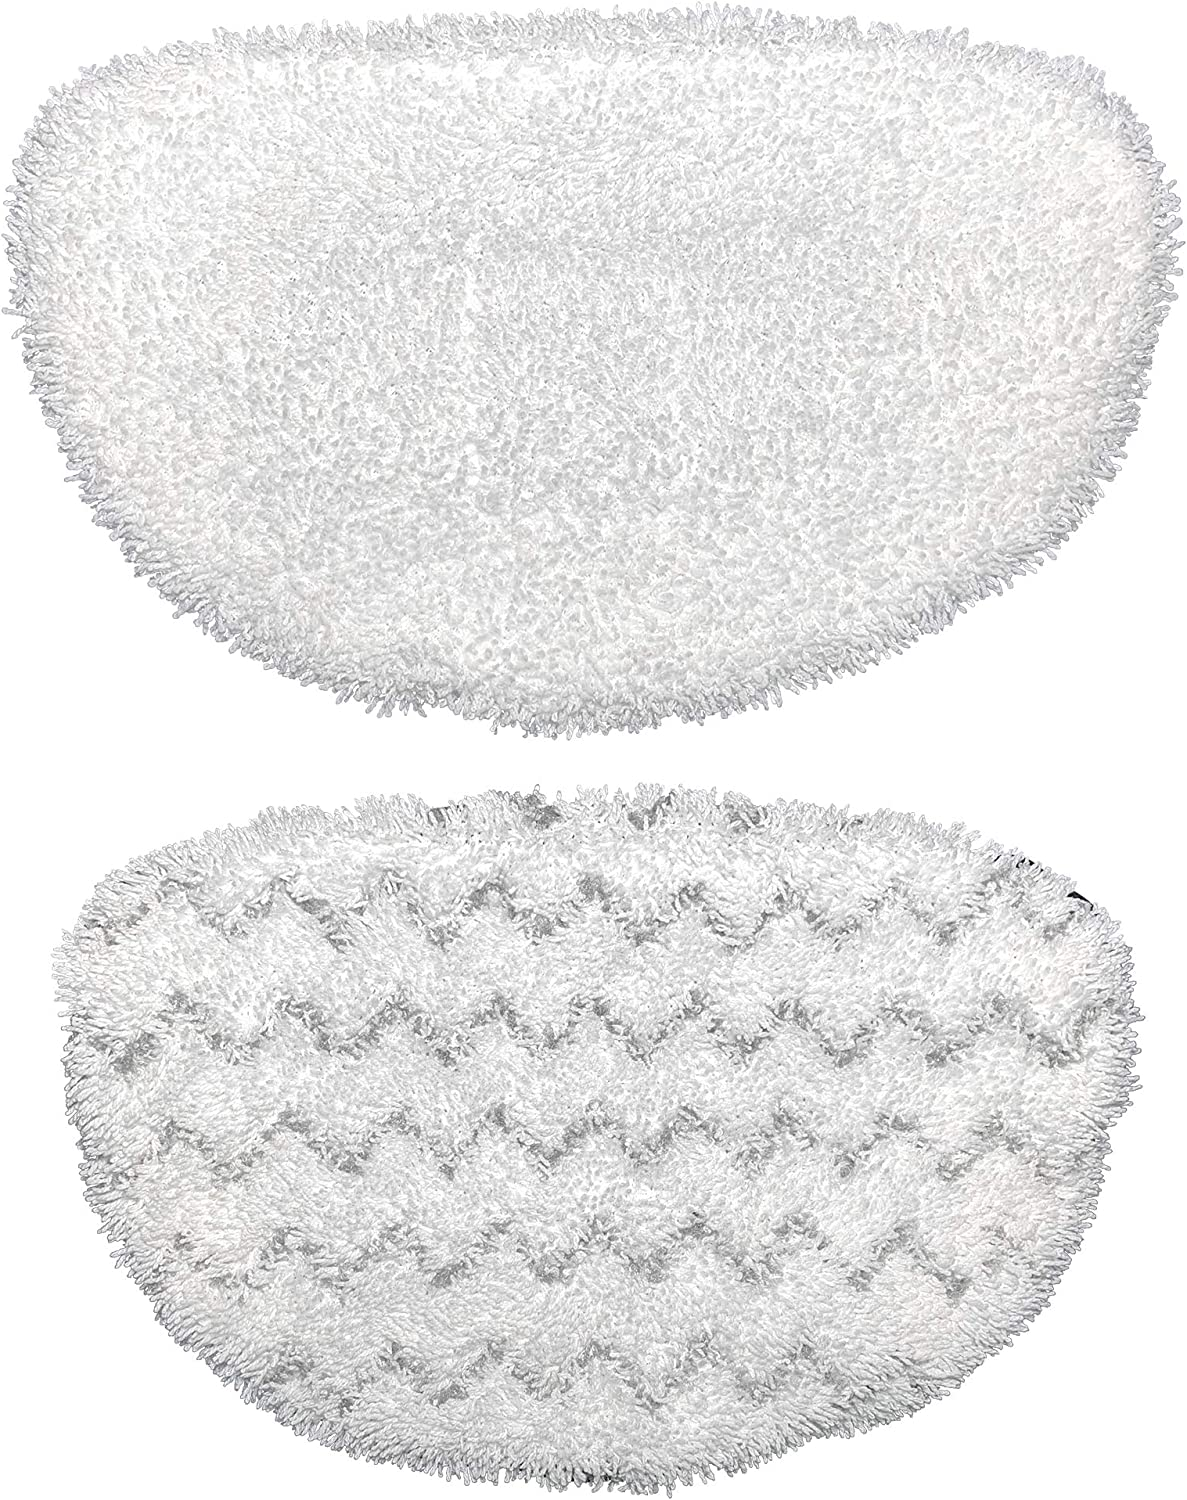 Washable Steam Mop Pads for Bissell PowerFresh 1940 1440 1544 Series, Model 19402, 19404, 19408, 1940A, 1940Q, 1940T, 1940W (2 pcs)